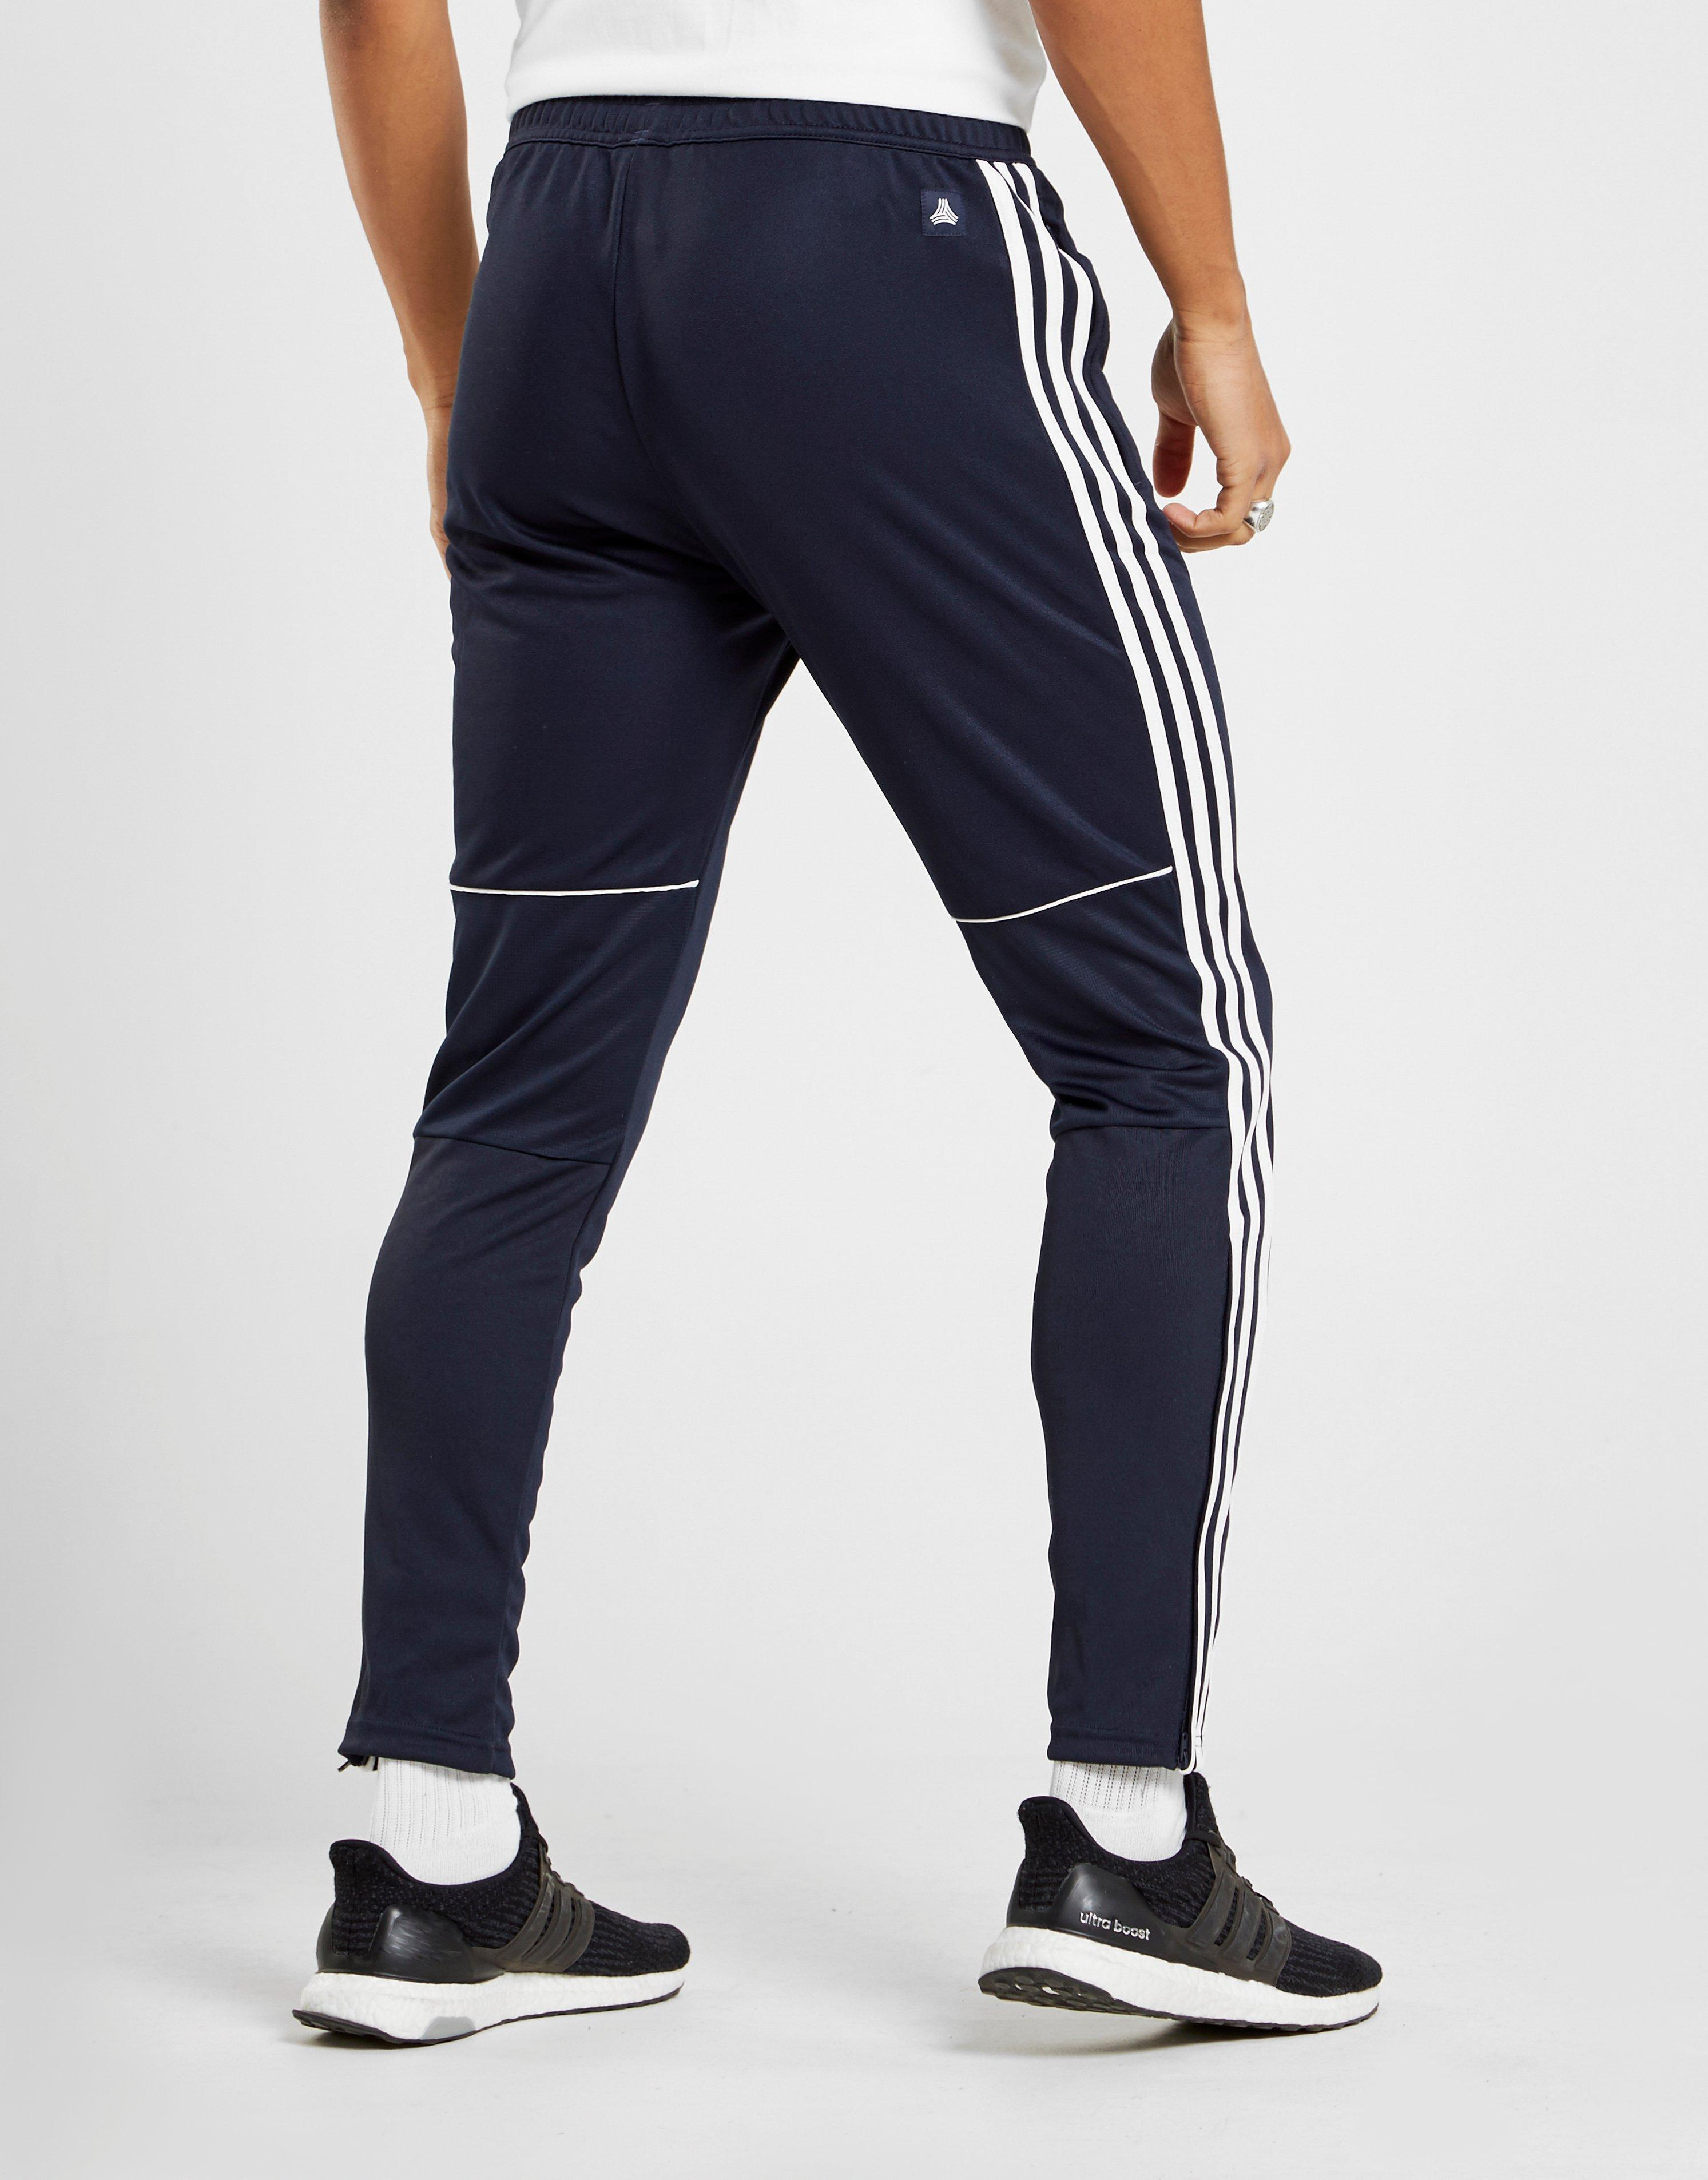 finest selection c41fe e8ed8 adidas Tango Track Pants in Blue for Men - Lyst